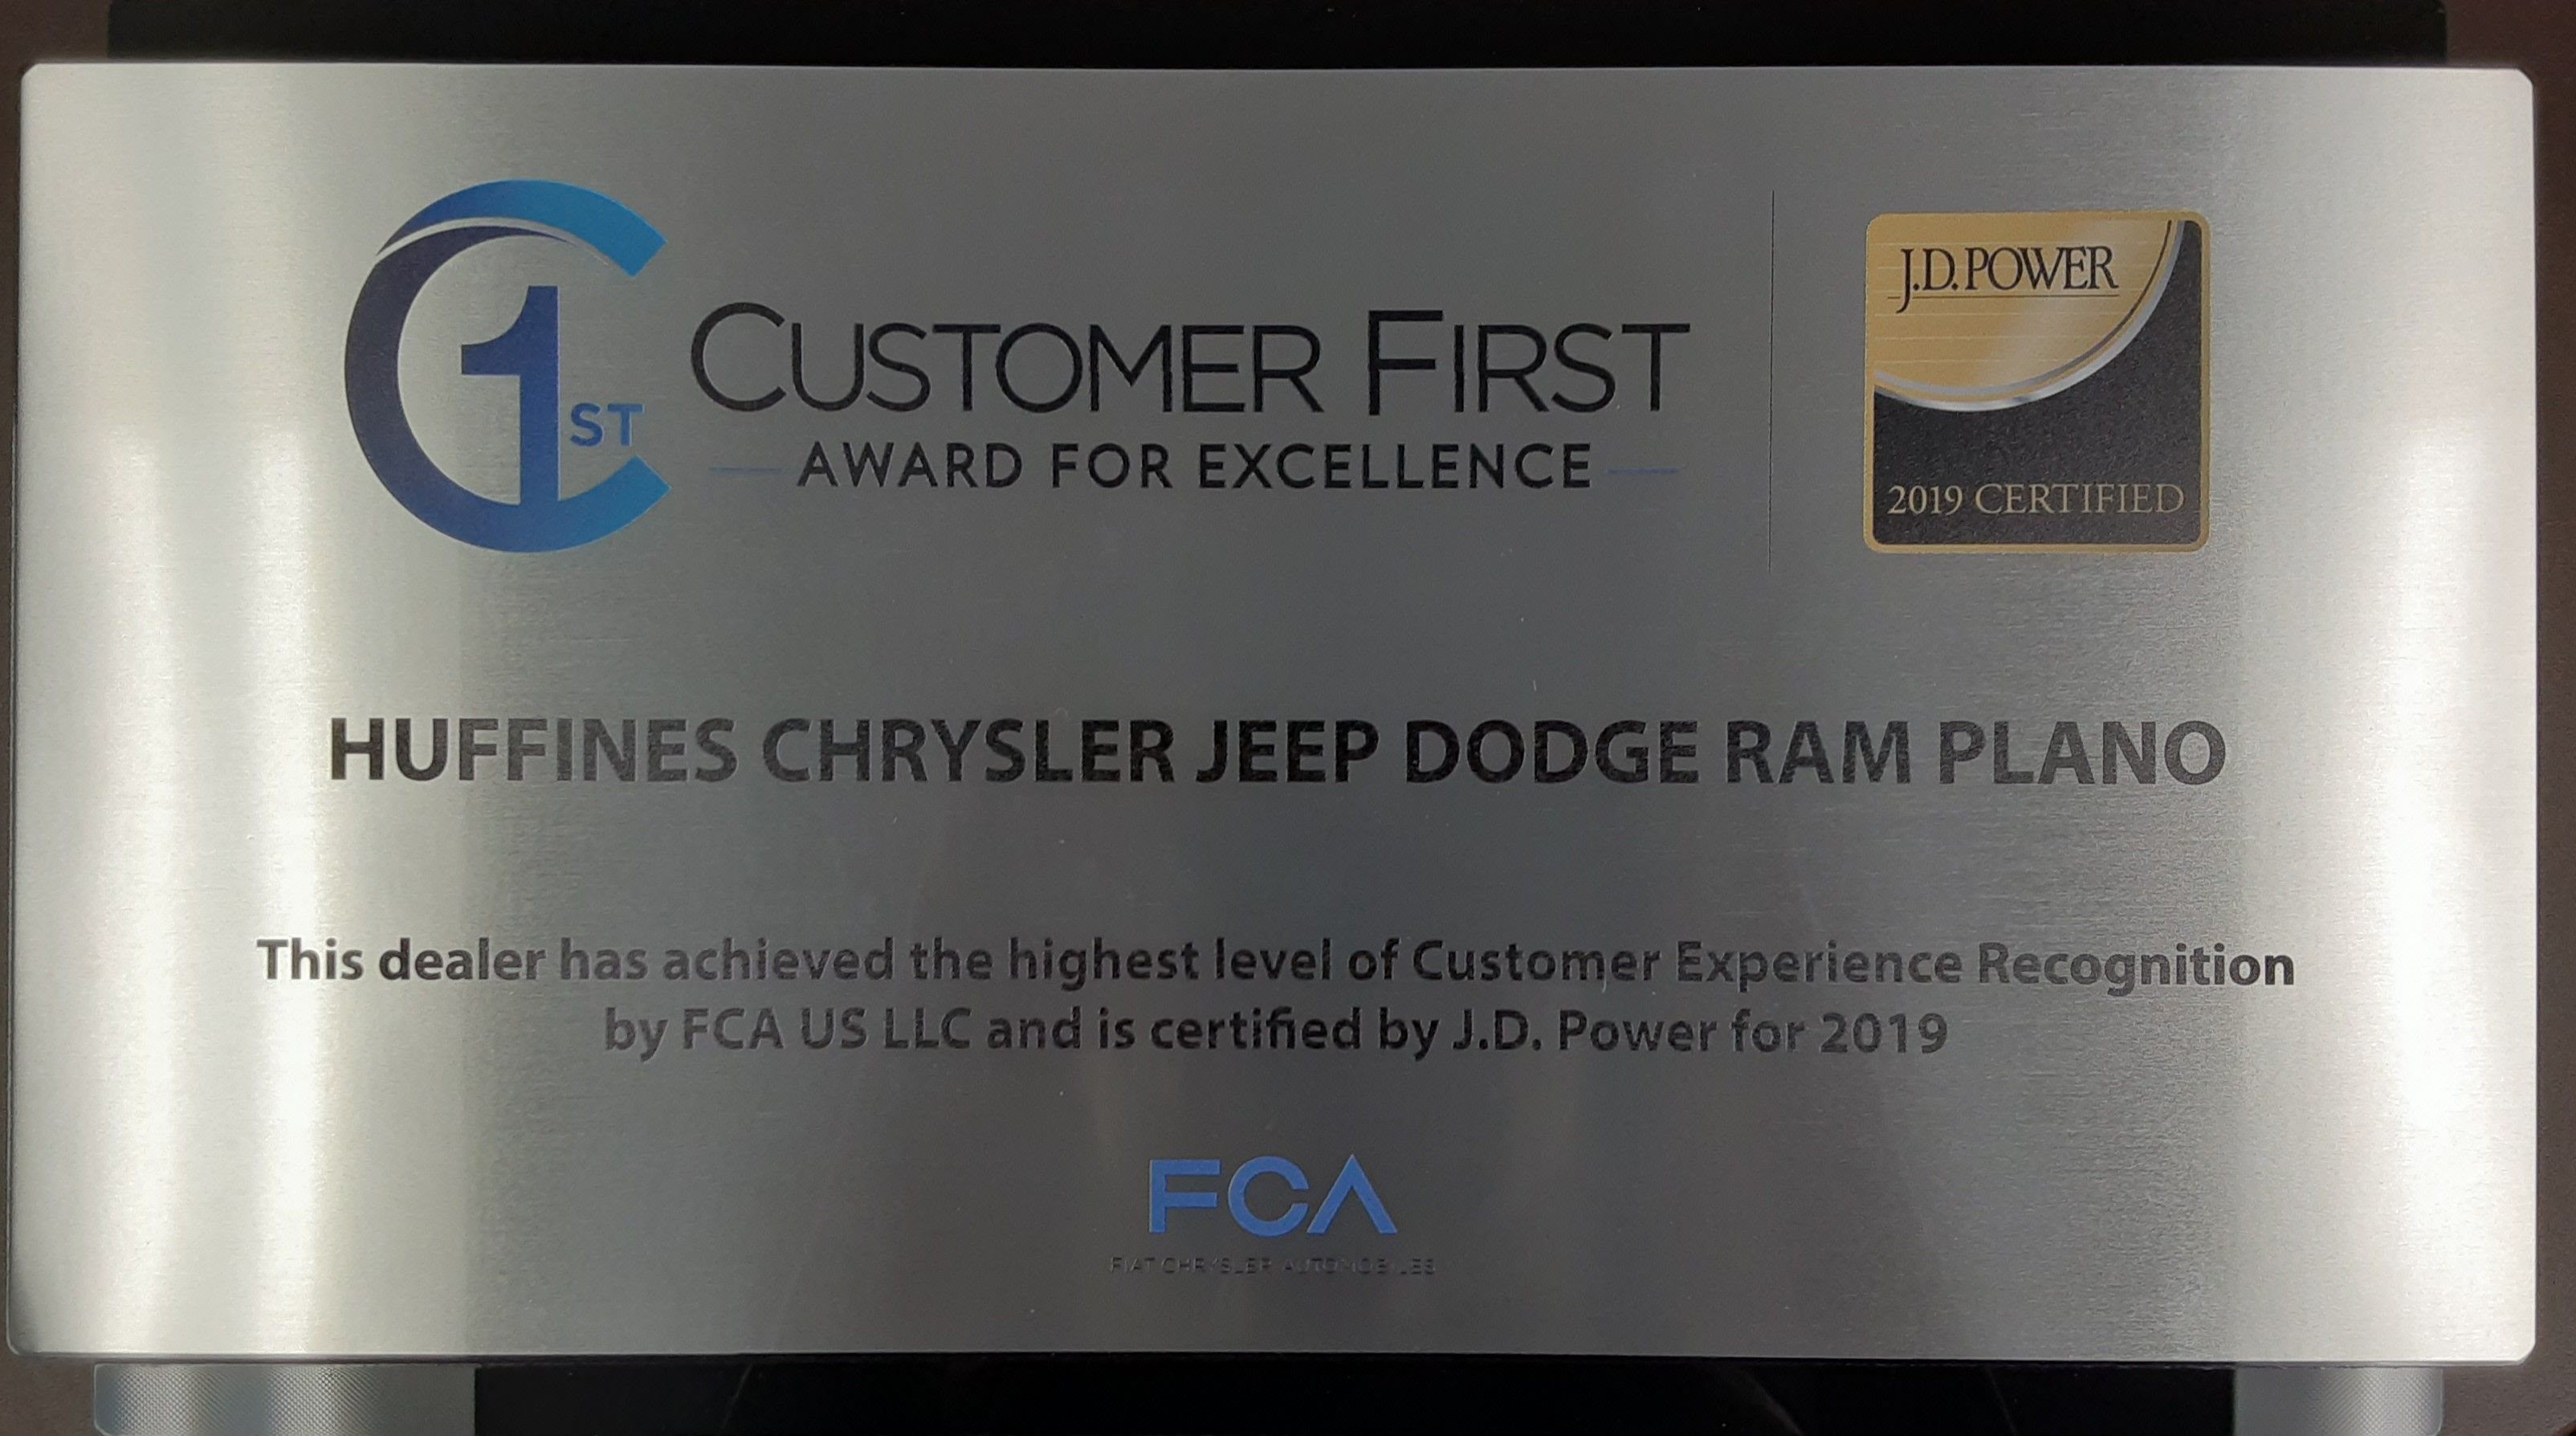 Huffines Chrysler Jeep Dodge Ram Plano Is Extremely Proud To Have Been Awarded The 2019 Customer First Award For Excellence Jeep Dodge Chrysler Jeep Dodge Ram